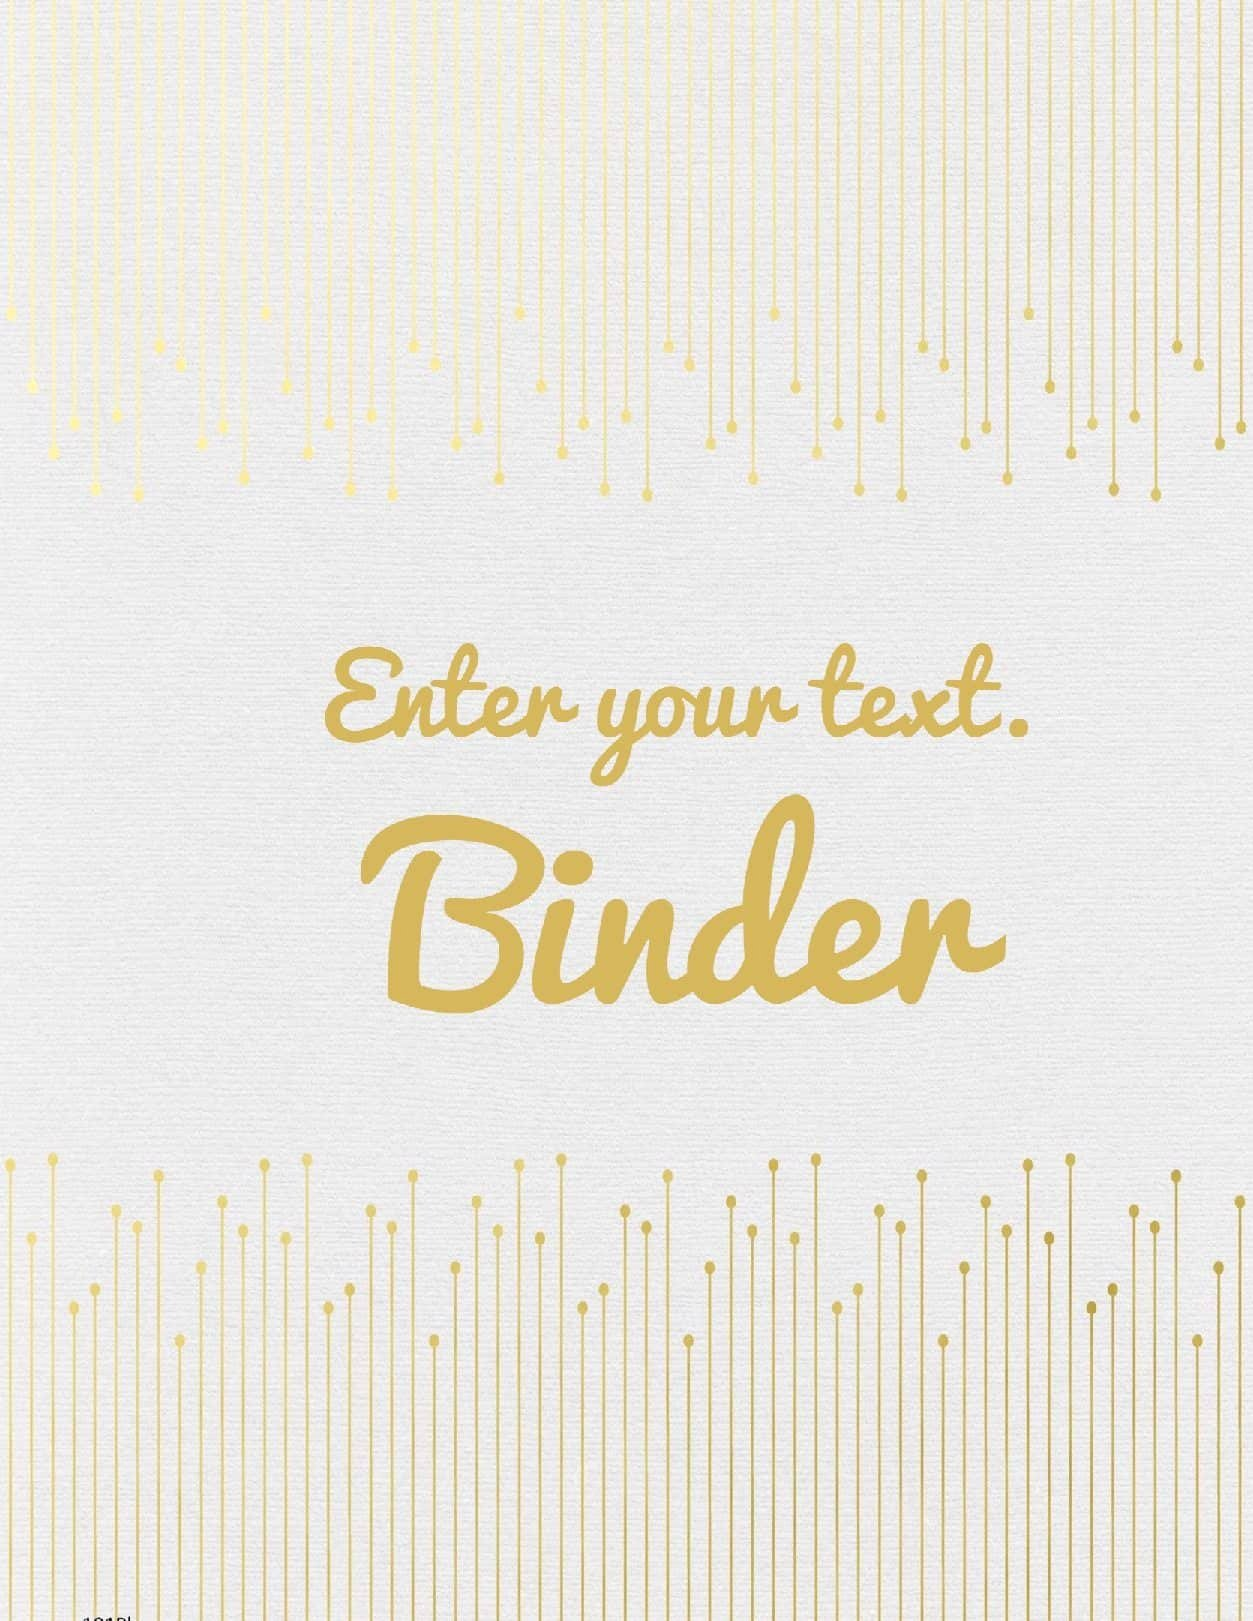 Free Binder Cover Templates Beautiful Free Binder Cover Templates